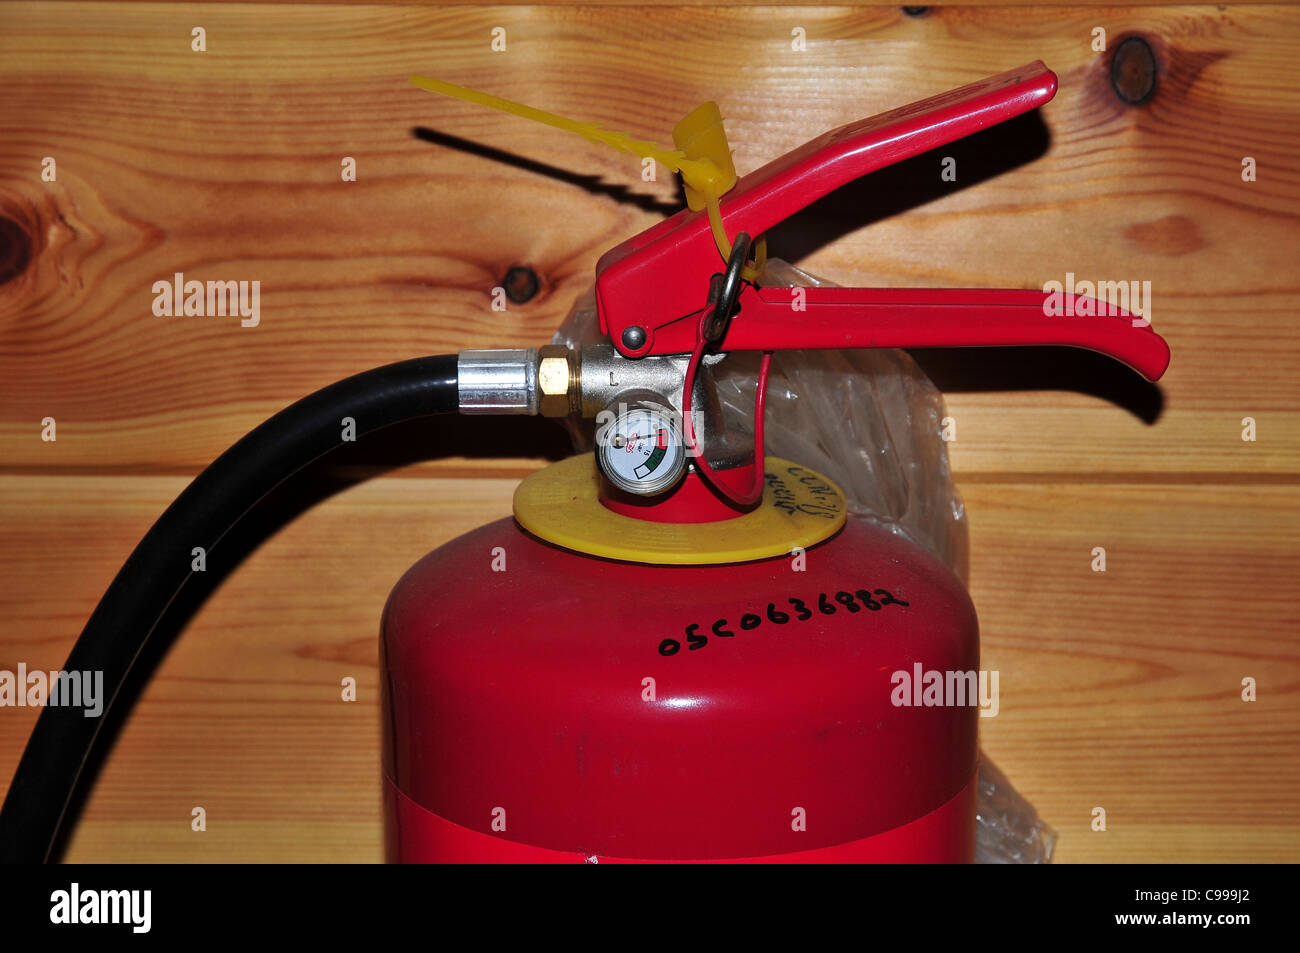 Domestic Fire Extinguisher - Stock Image